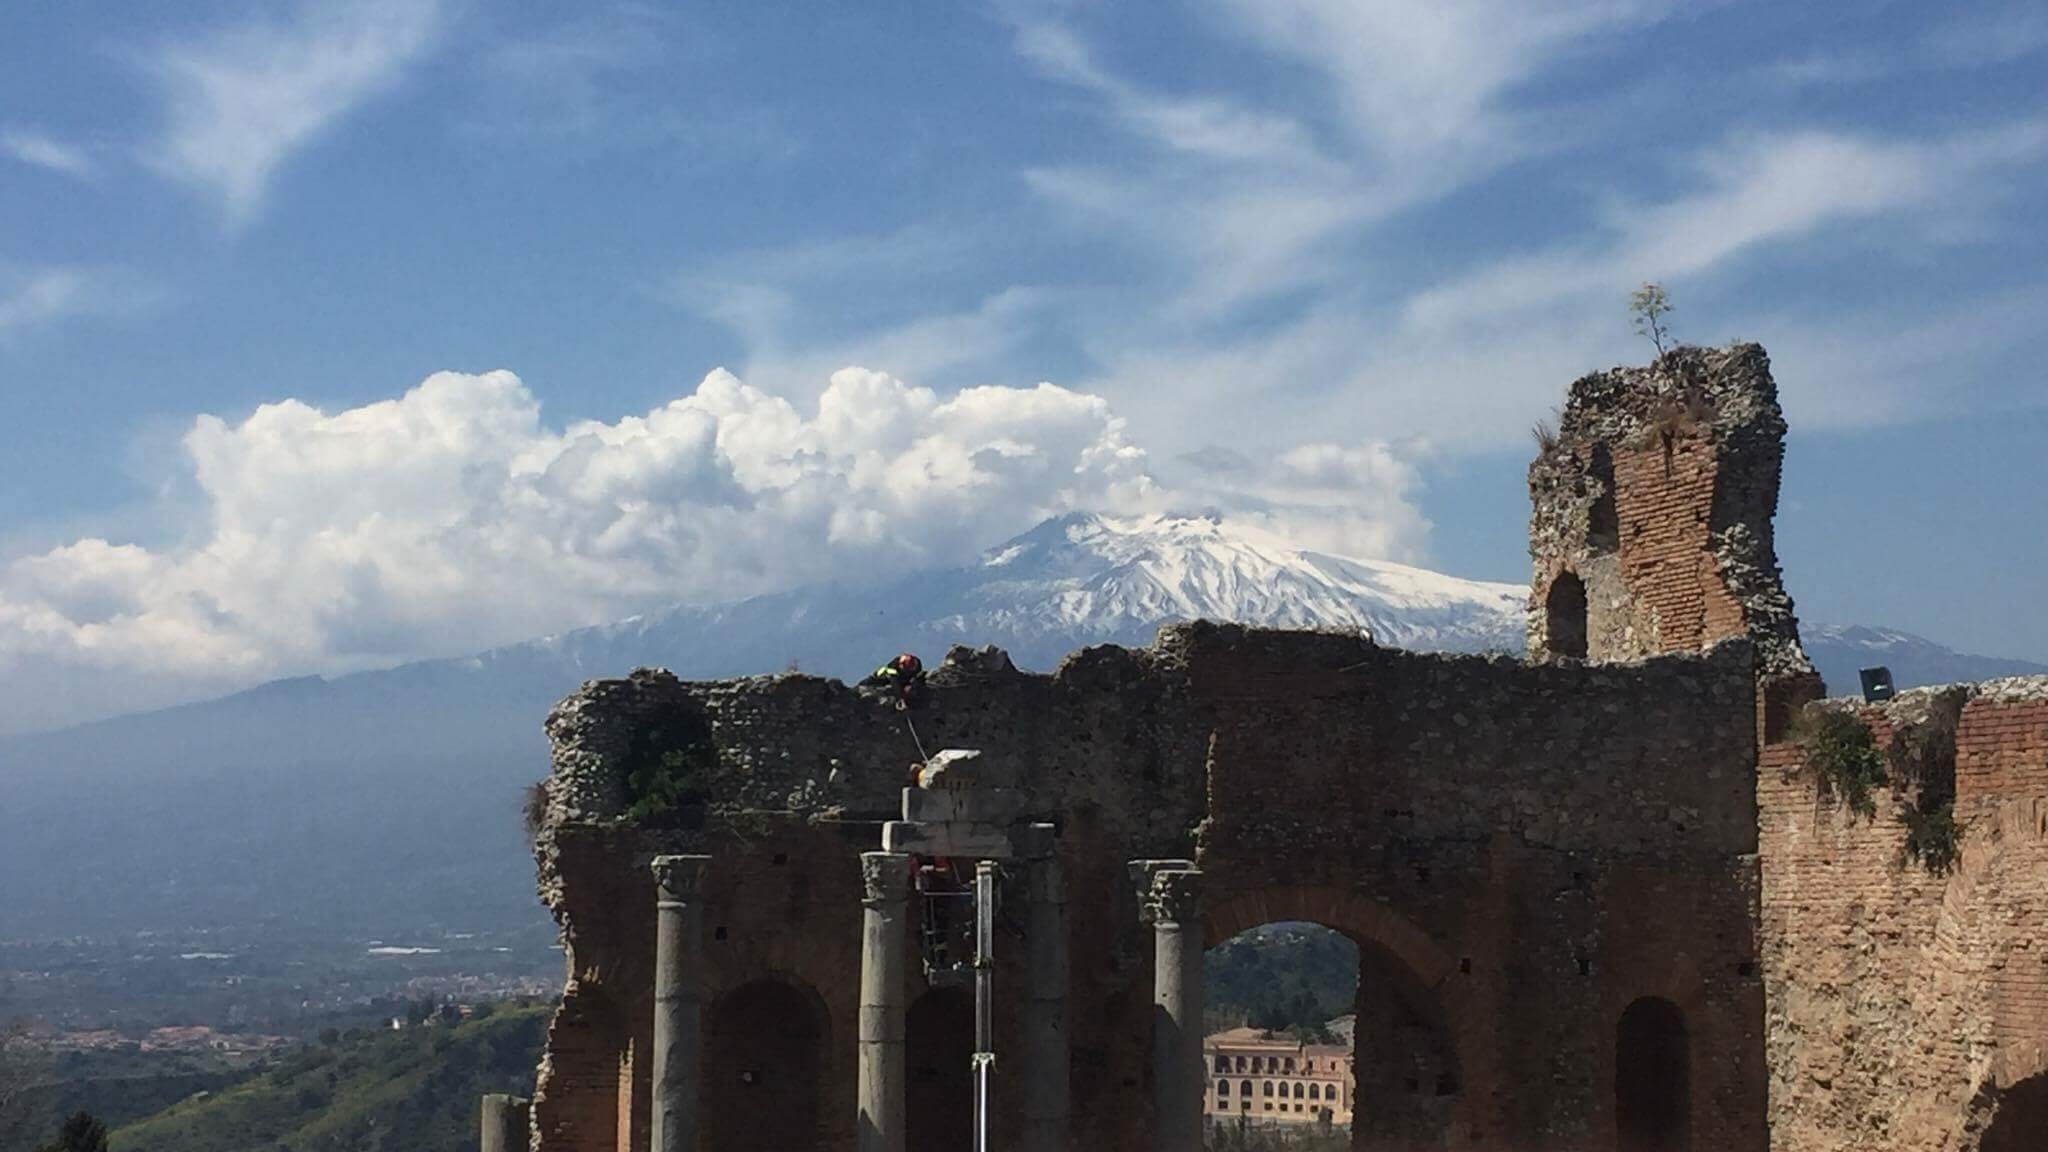 Another epic view of Mt. Etna from the Greek Theater in Taormina.